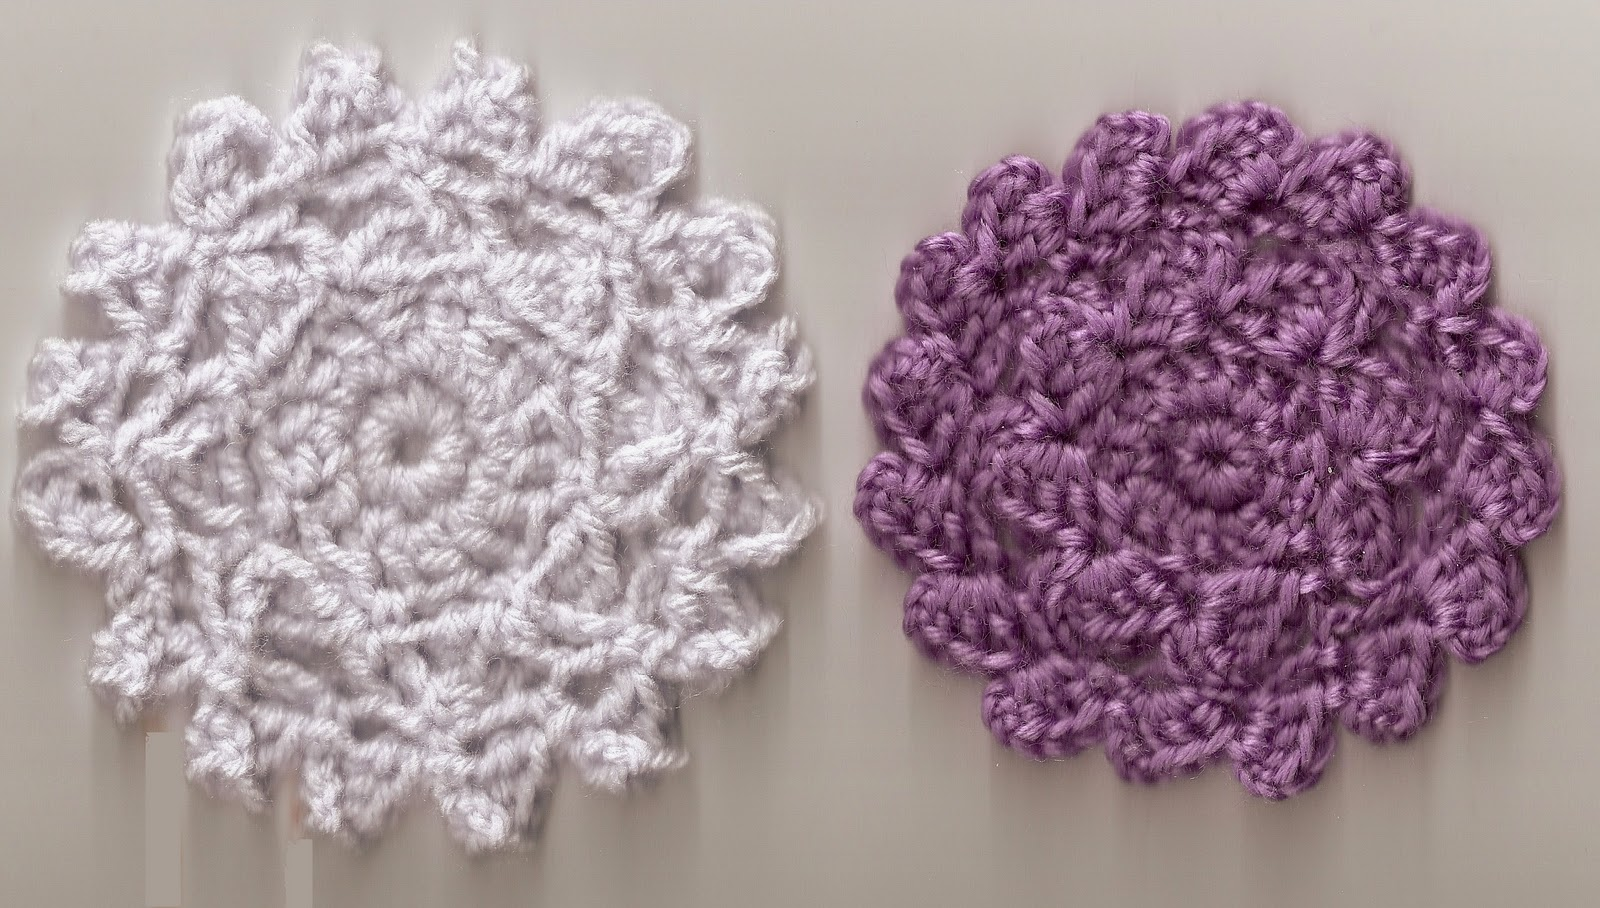 Smoothfox crochet and knit smoothfoxs petal coasters free pattern smoothfoxs petal coasters free pattern bankloansurffo Images